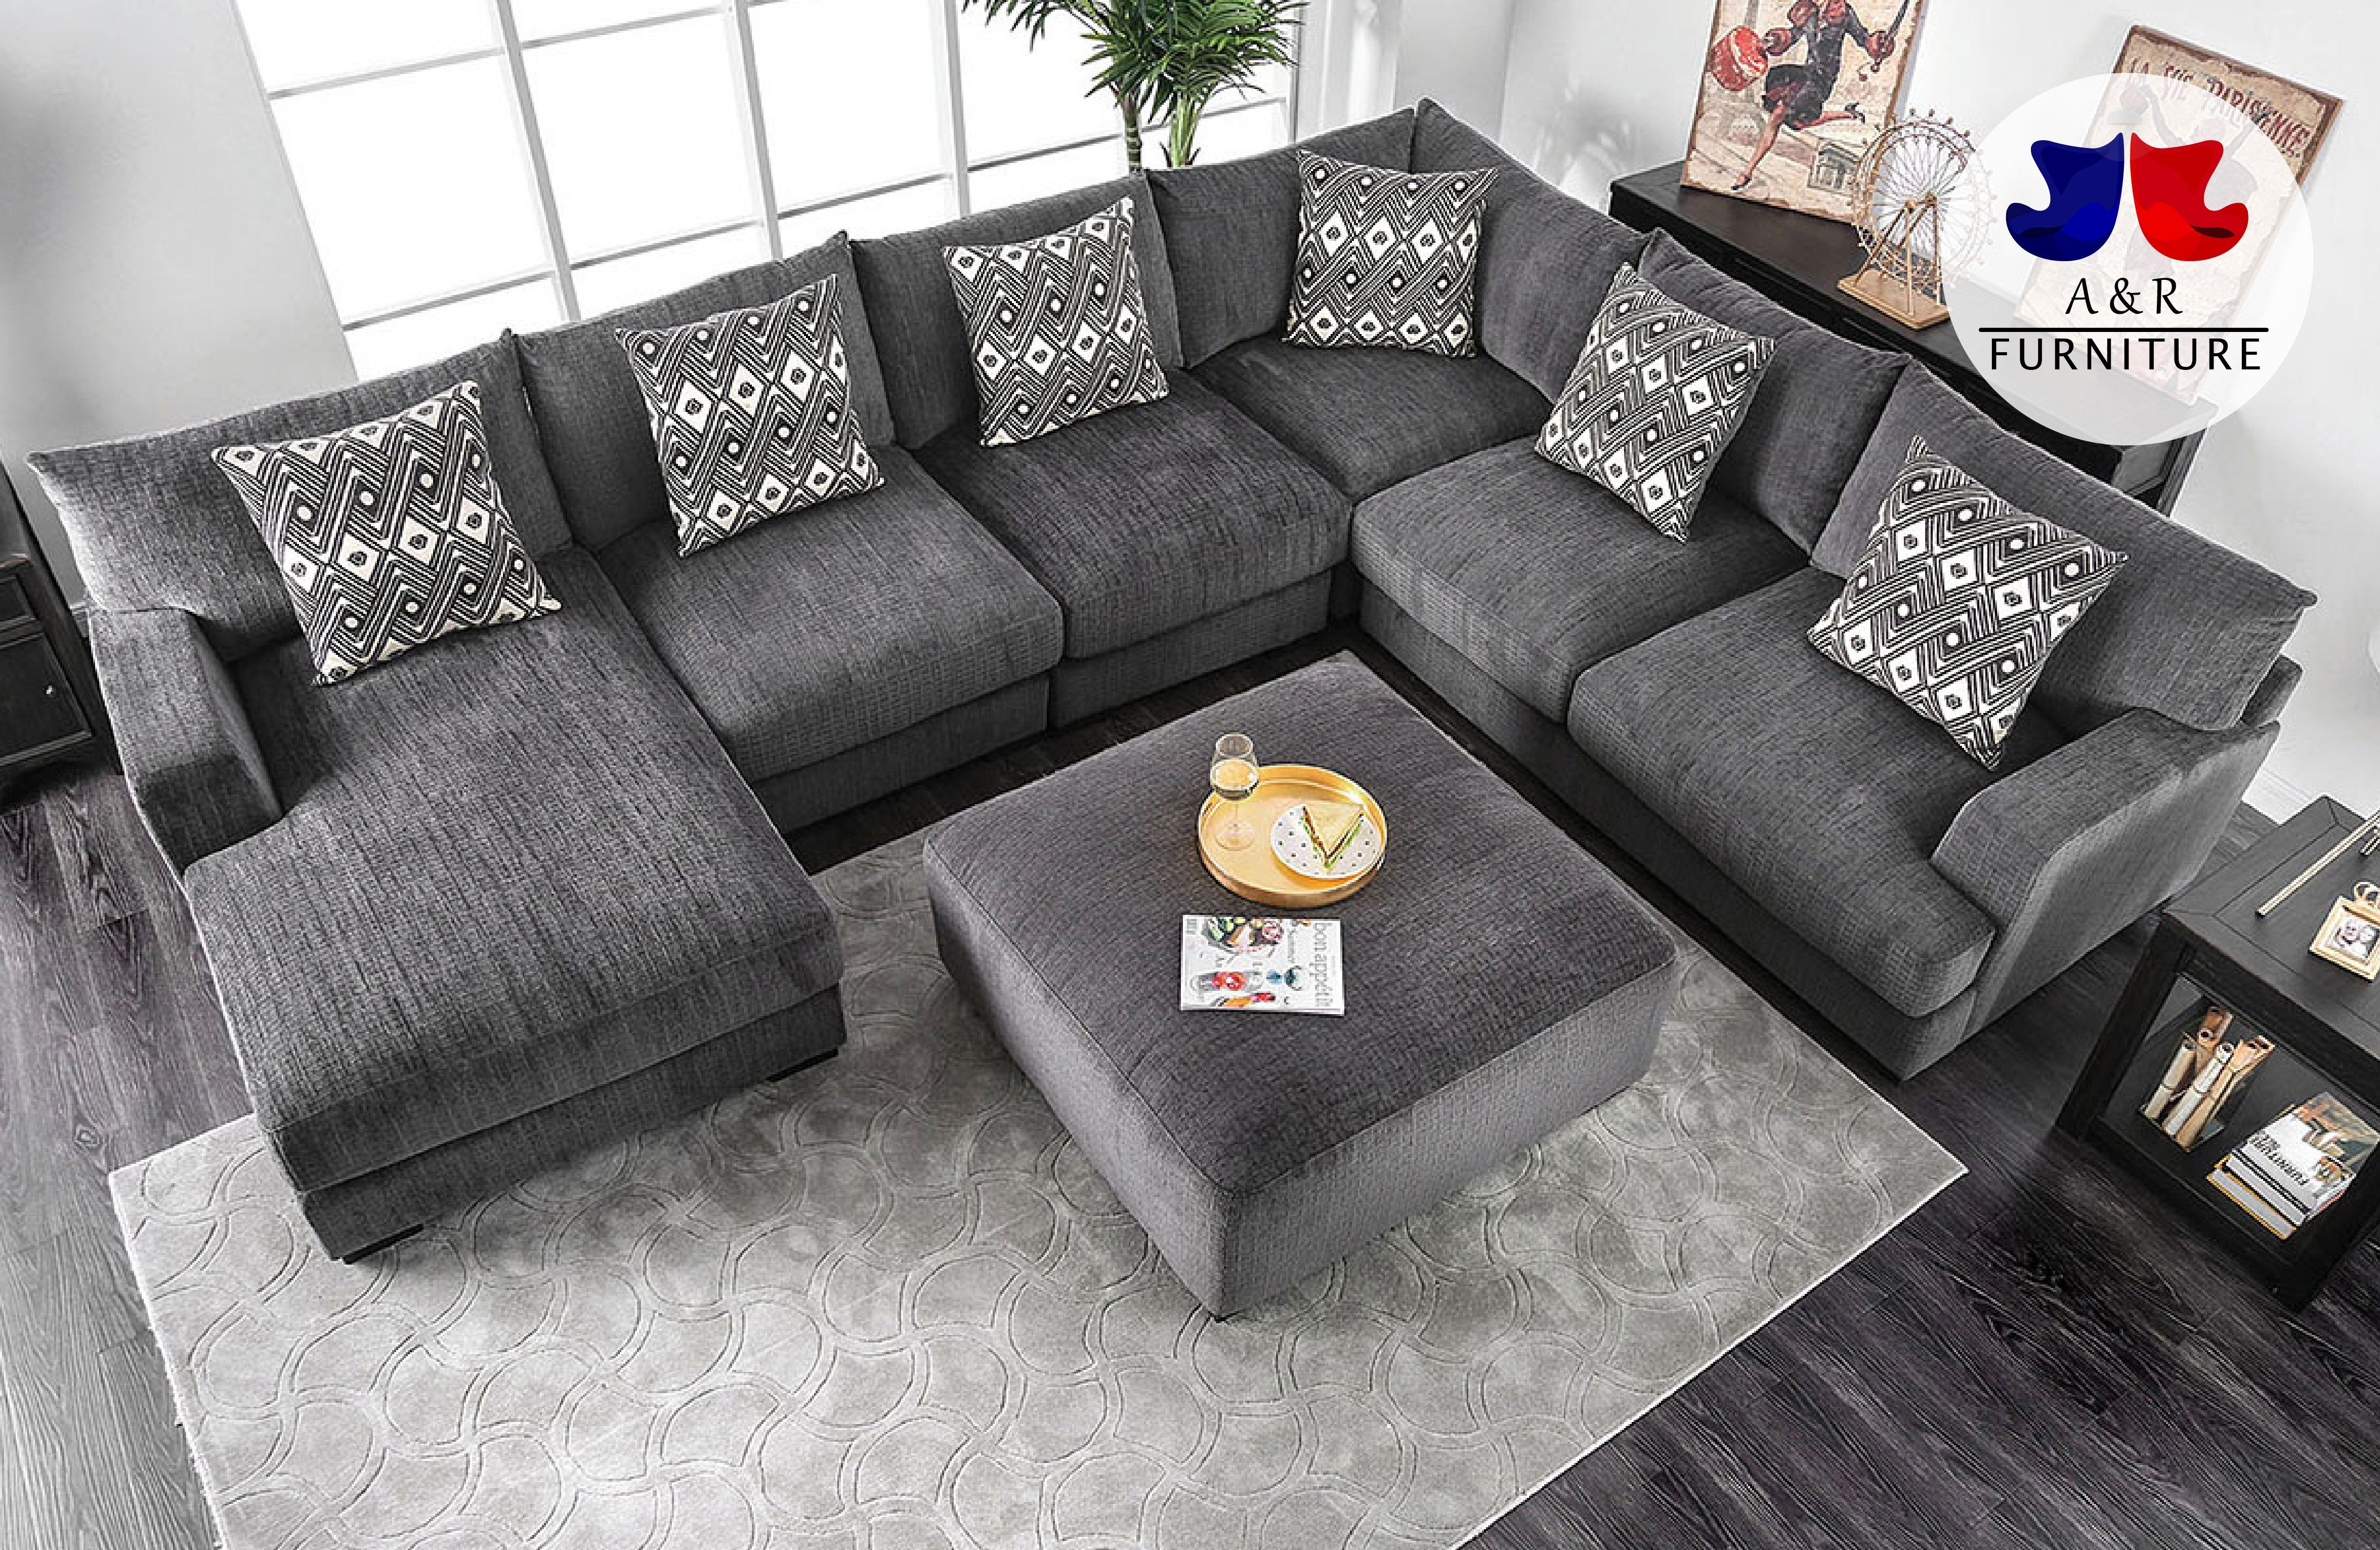 5 Pc Kaylee Gray Chenille Fabric Sectional Sofa Set With Chaise And Ottoman Fa Fabric Sectional Sofas Black Sectional Living Room Sectional Sofa